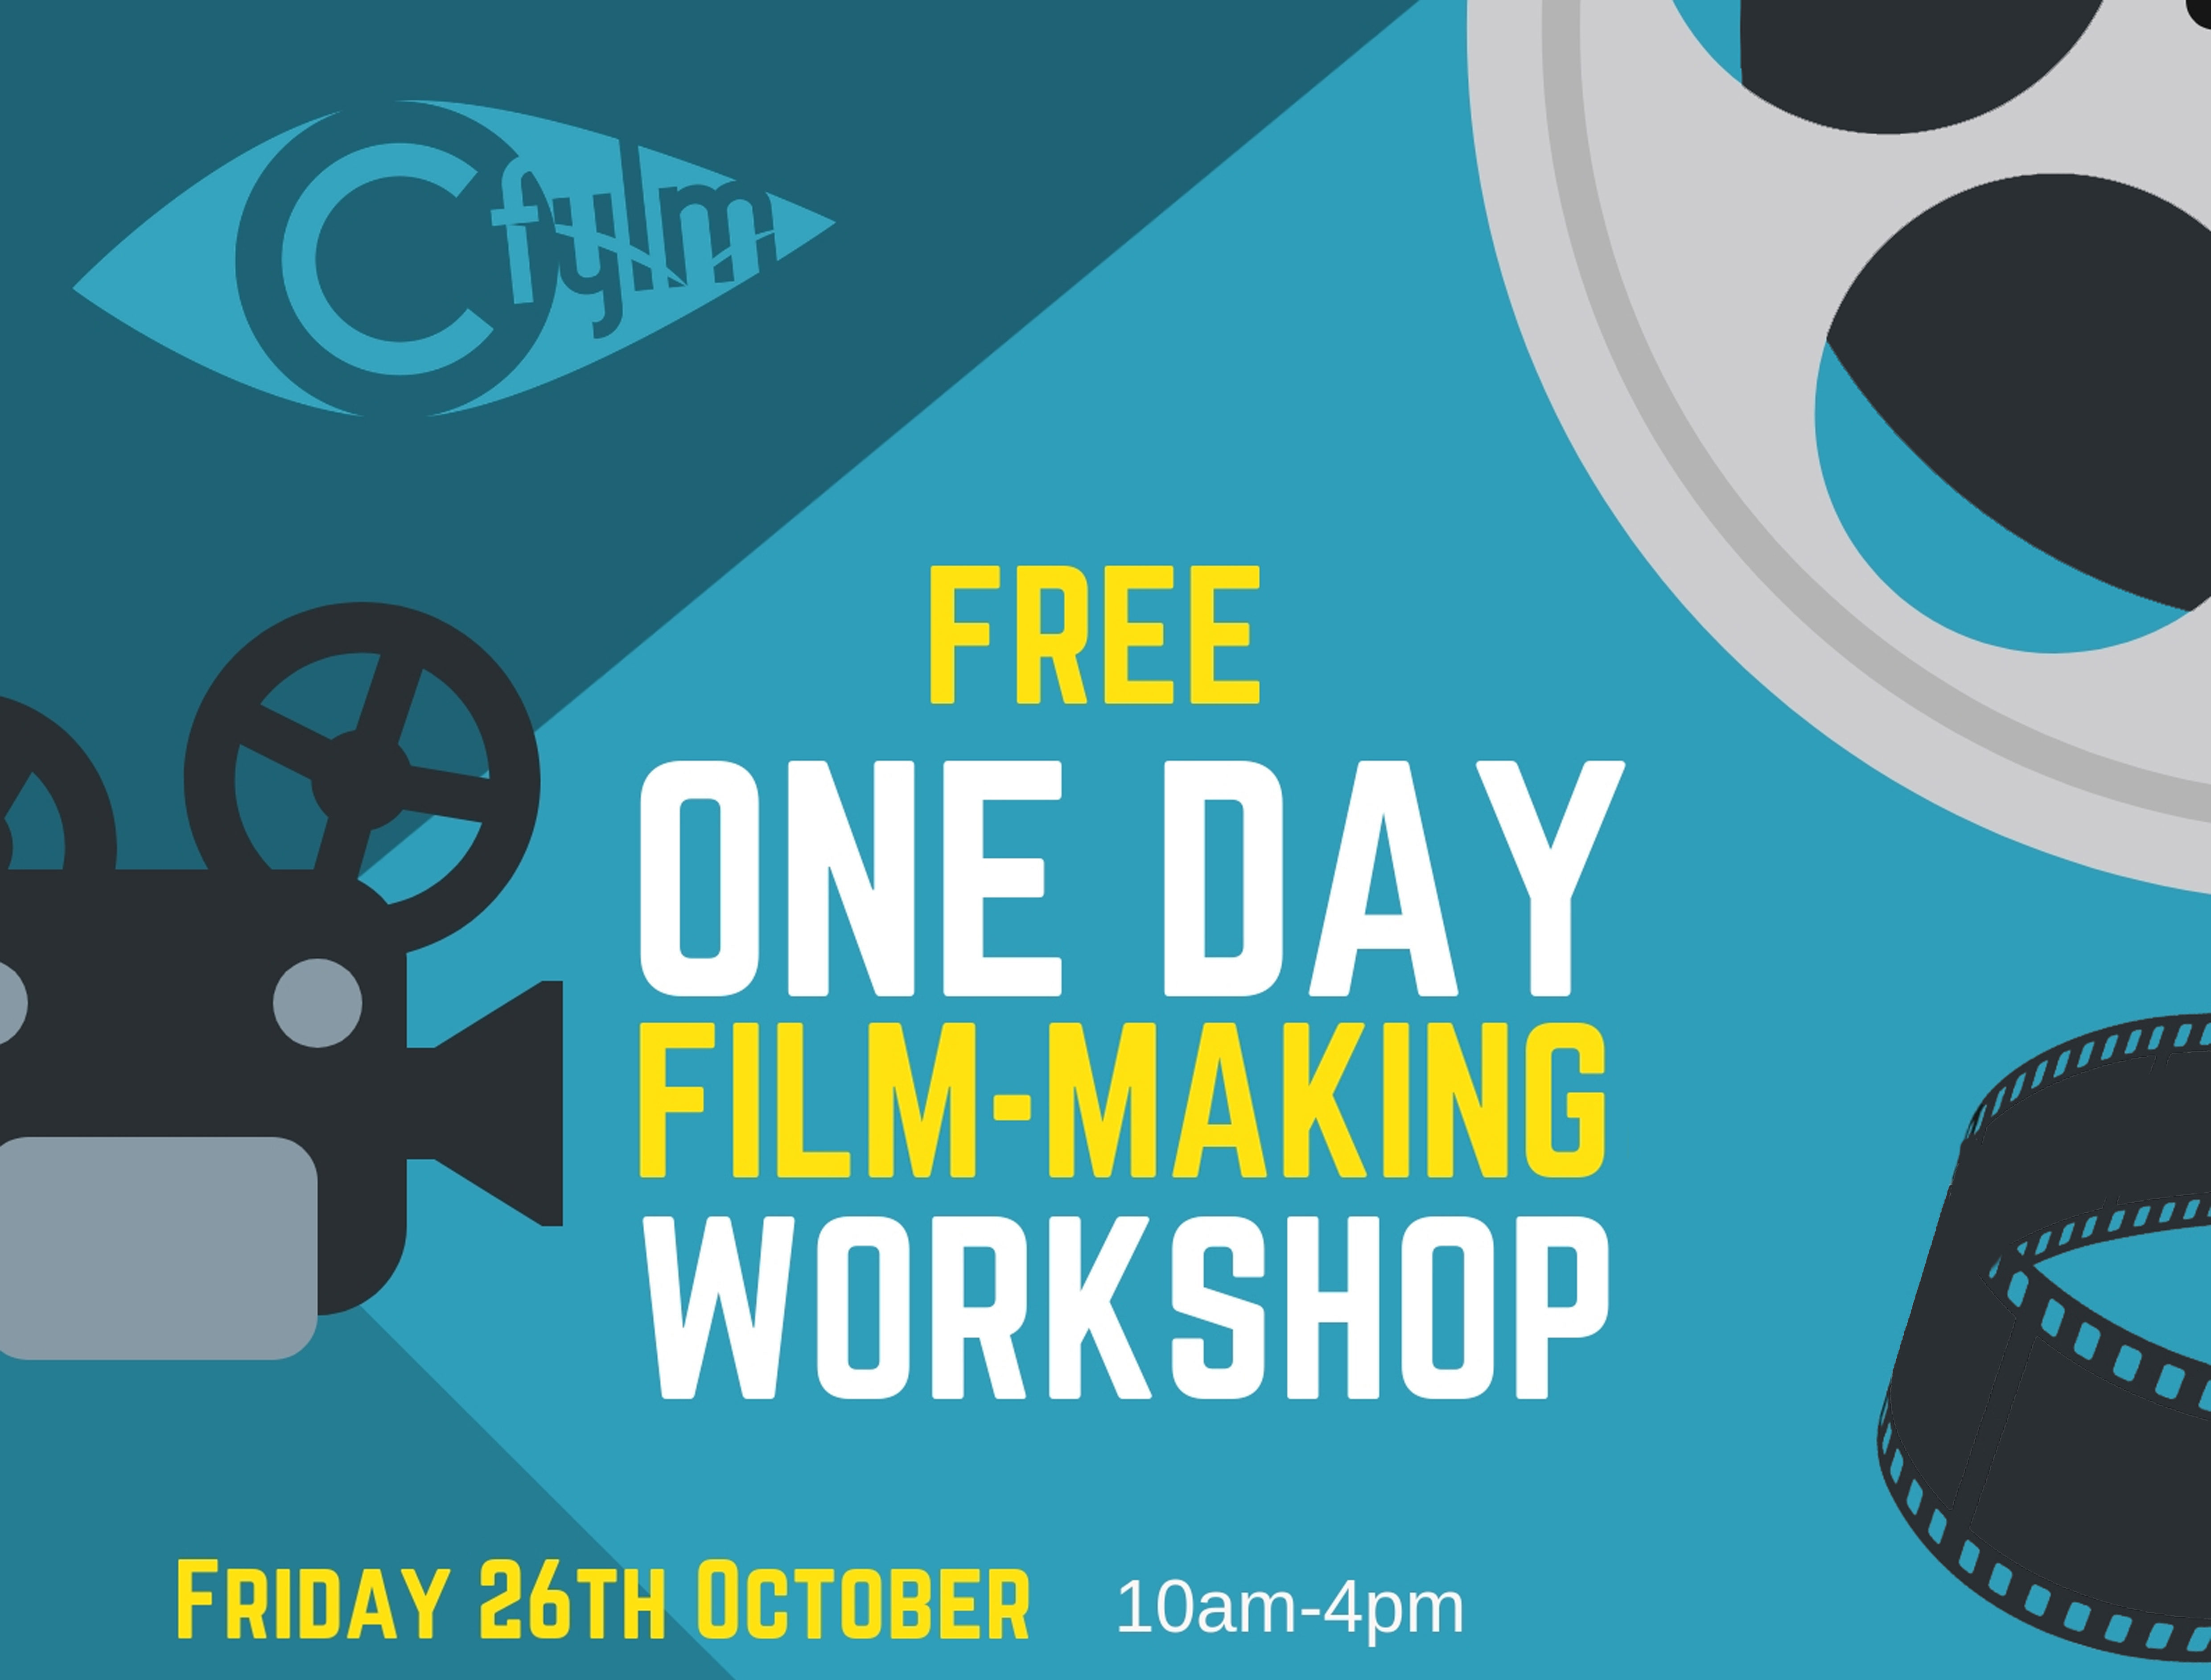 Free film making workshop – you're invited!